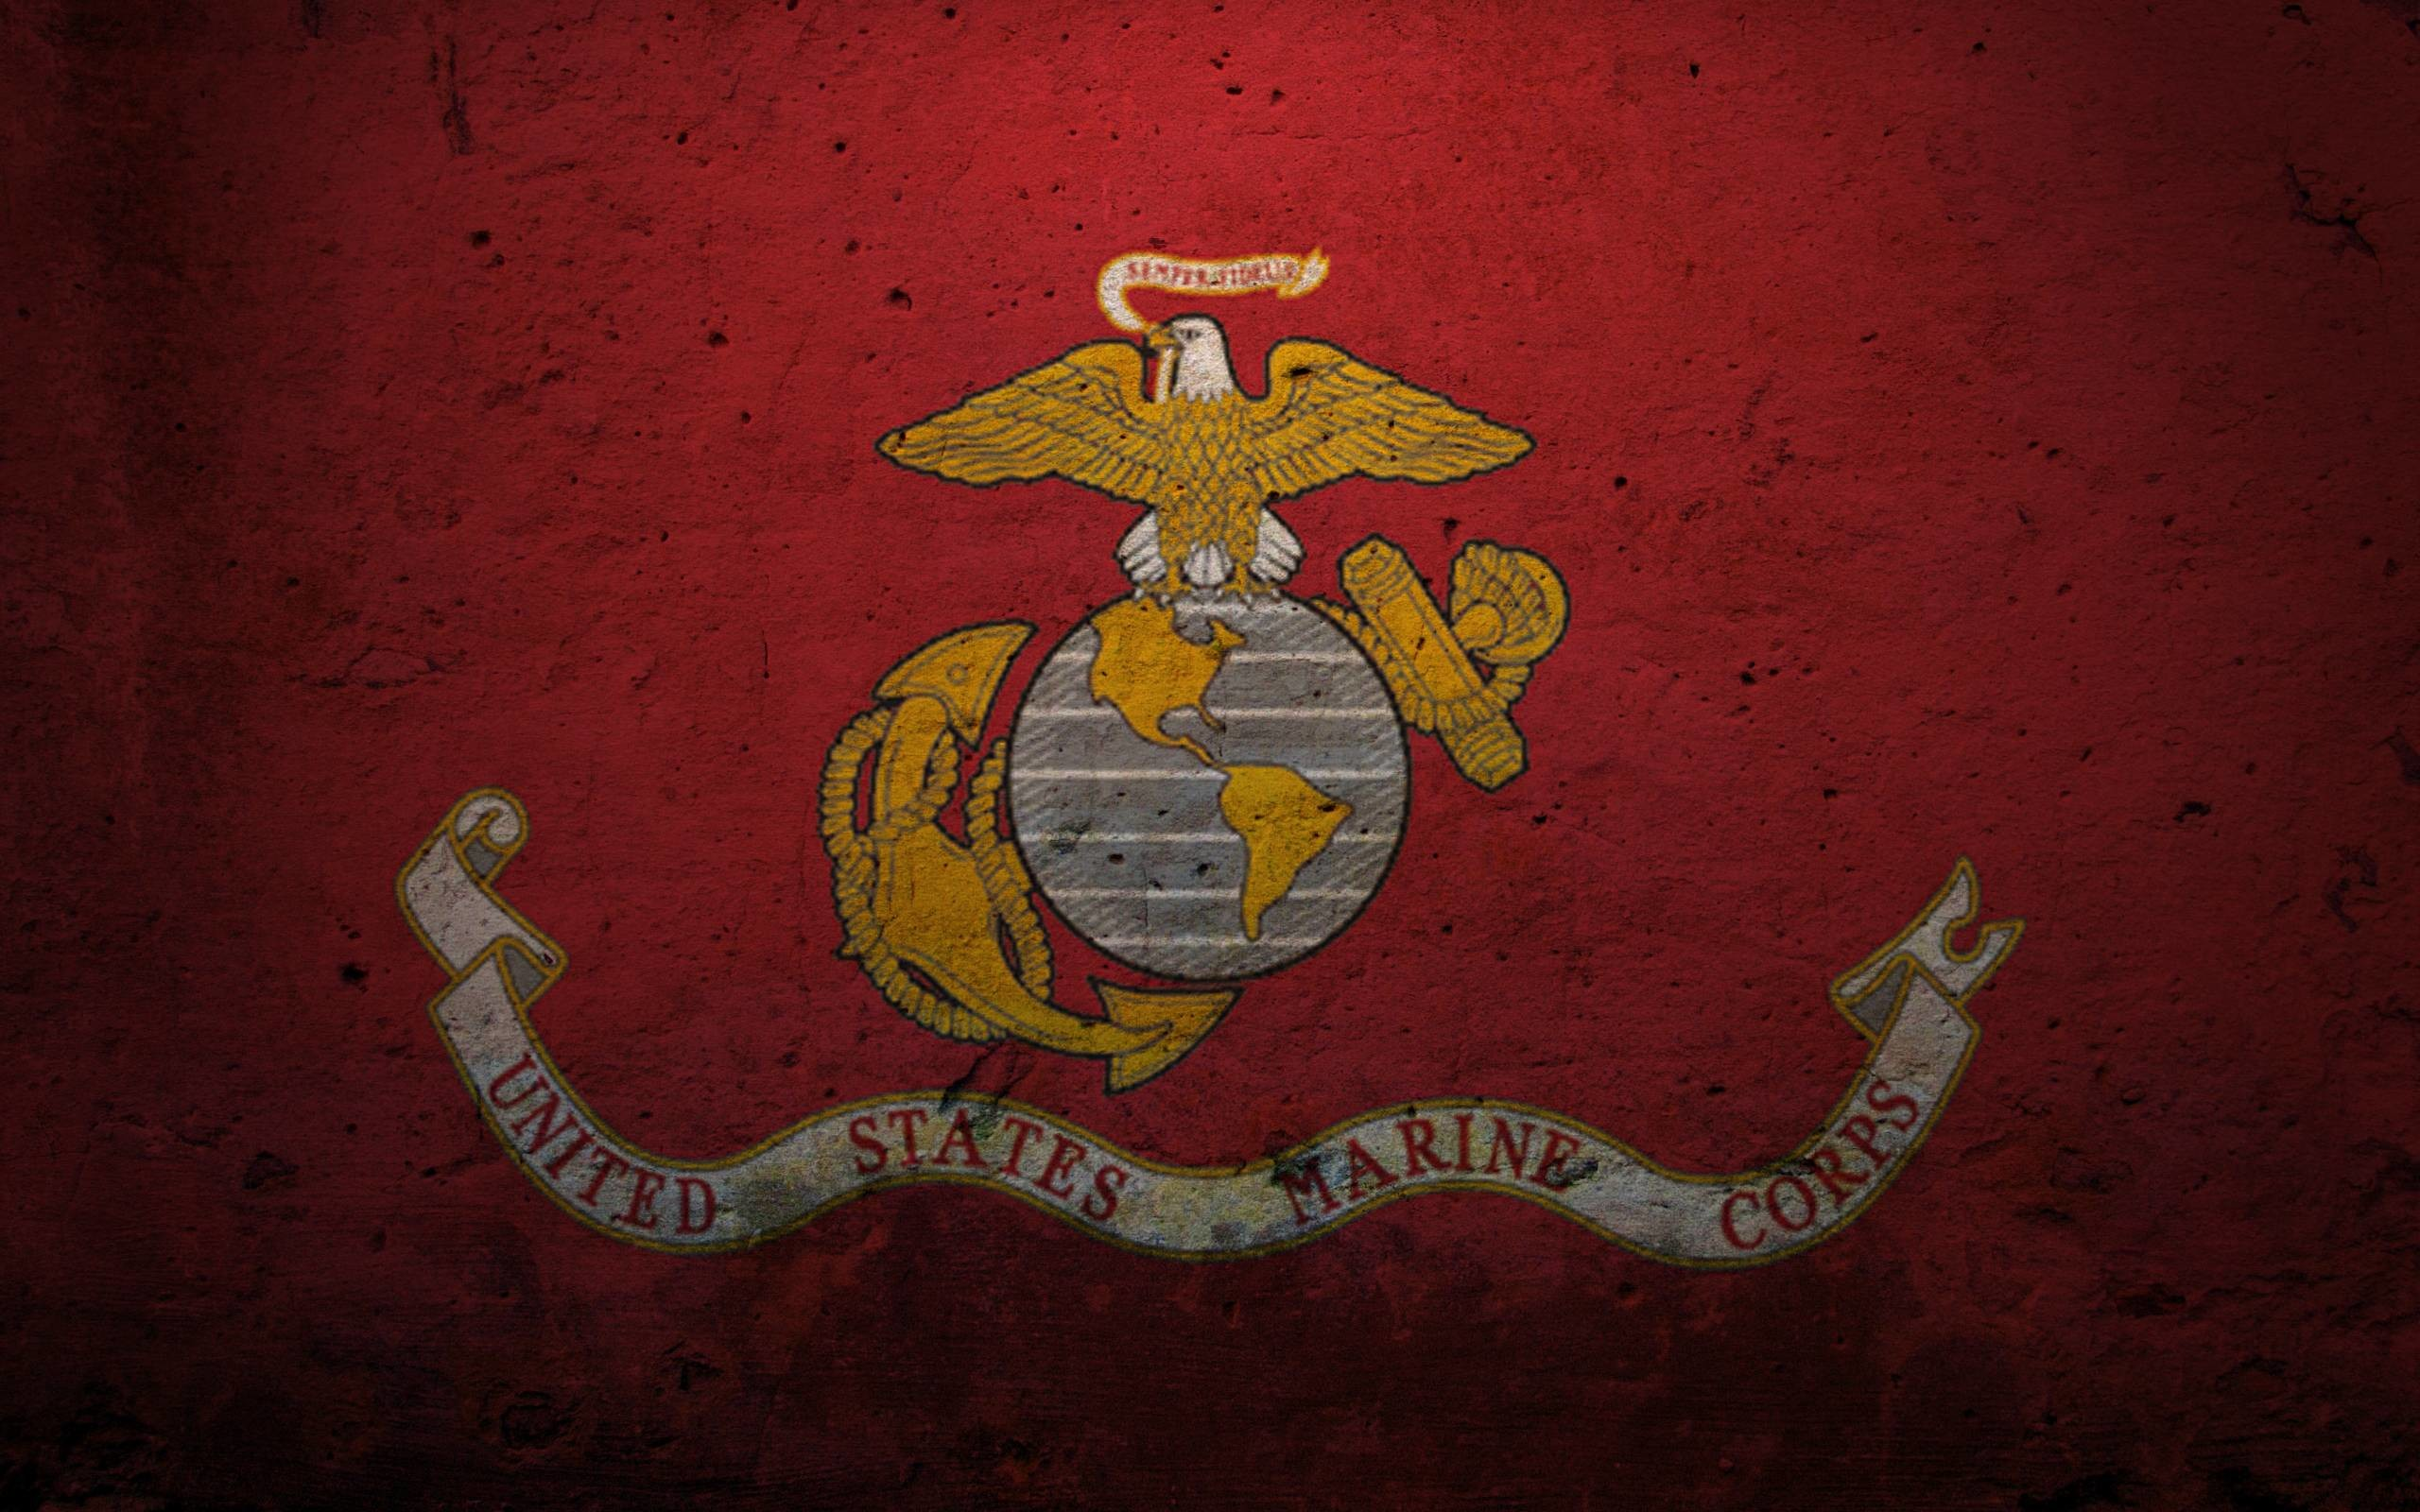 2560x1600 Usmc Desktop Wallpaper